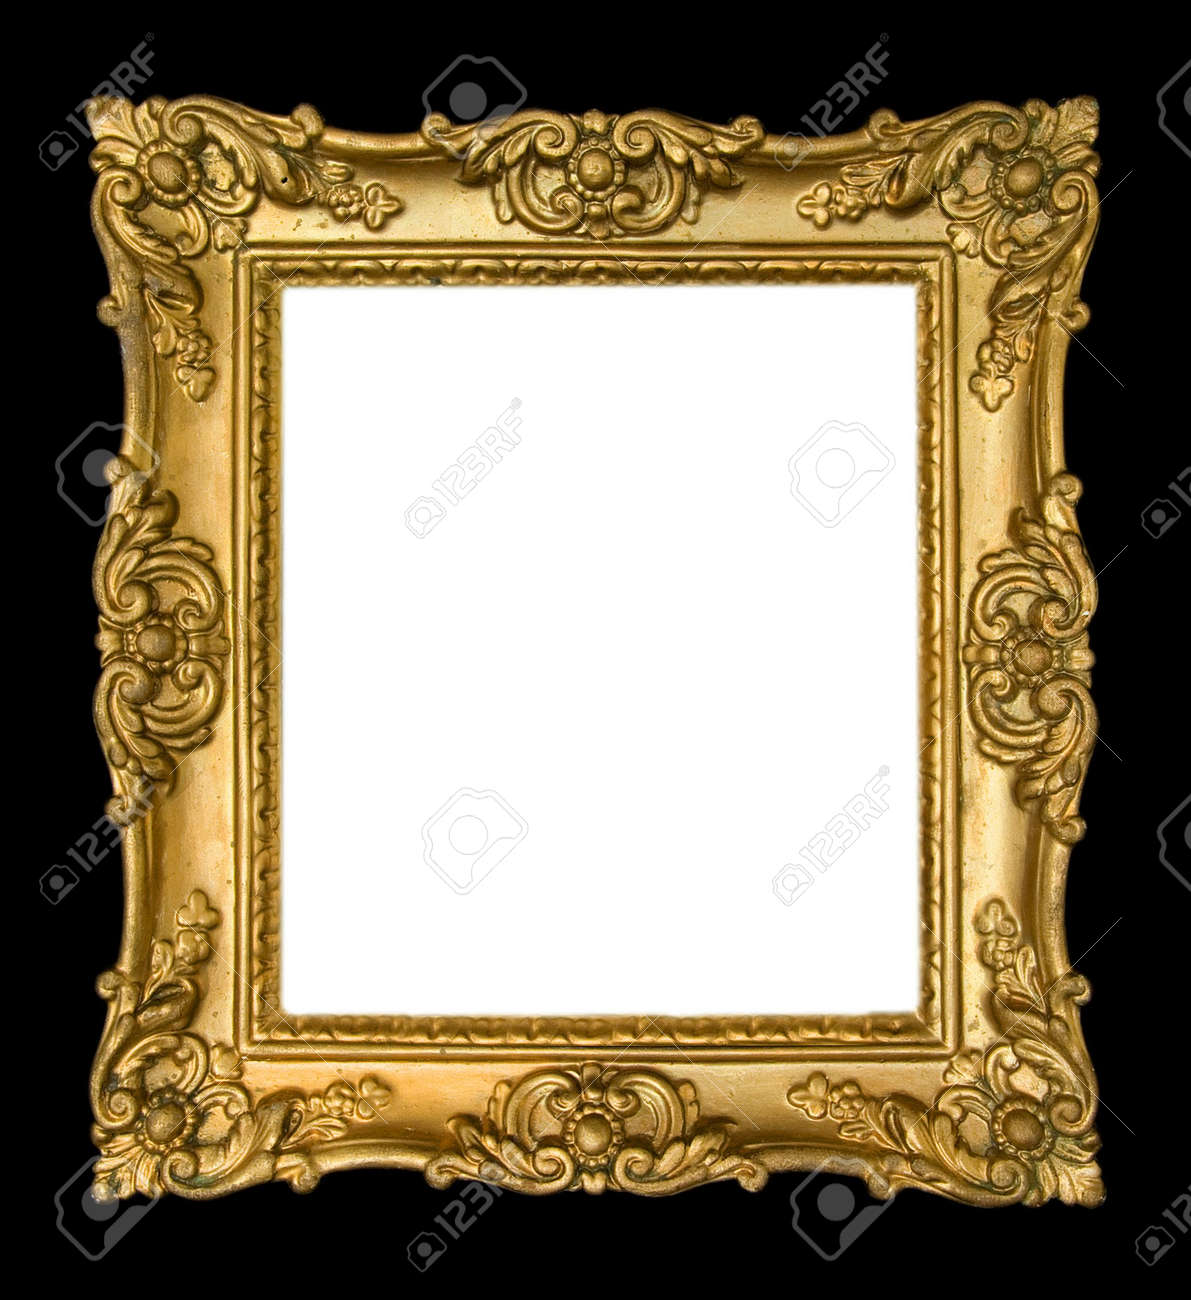 Ornate Vintage Gold Frame On Black Background Stock Photo Picture